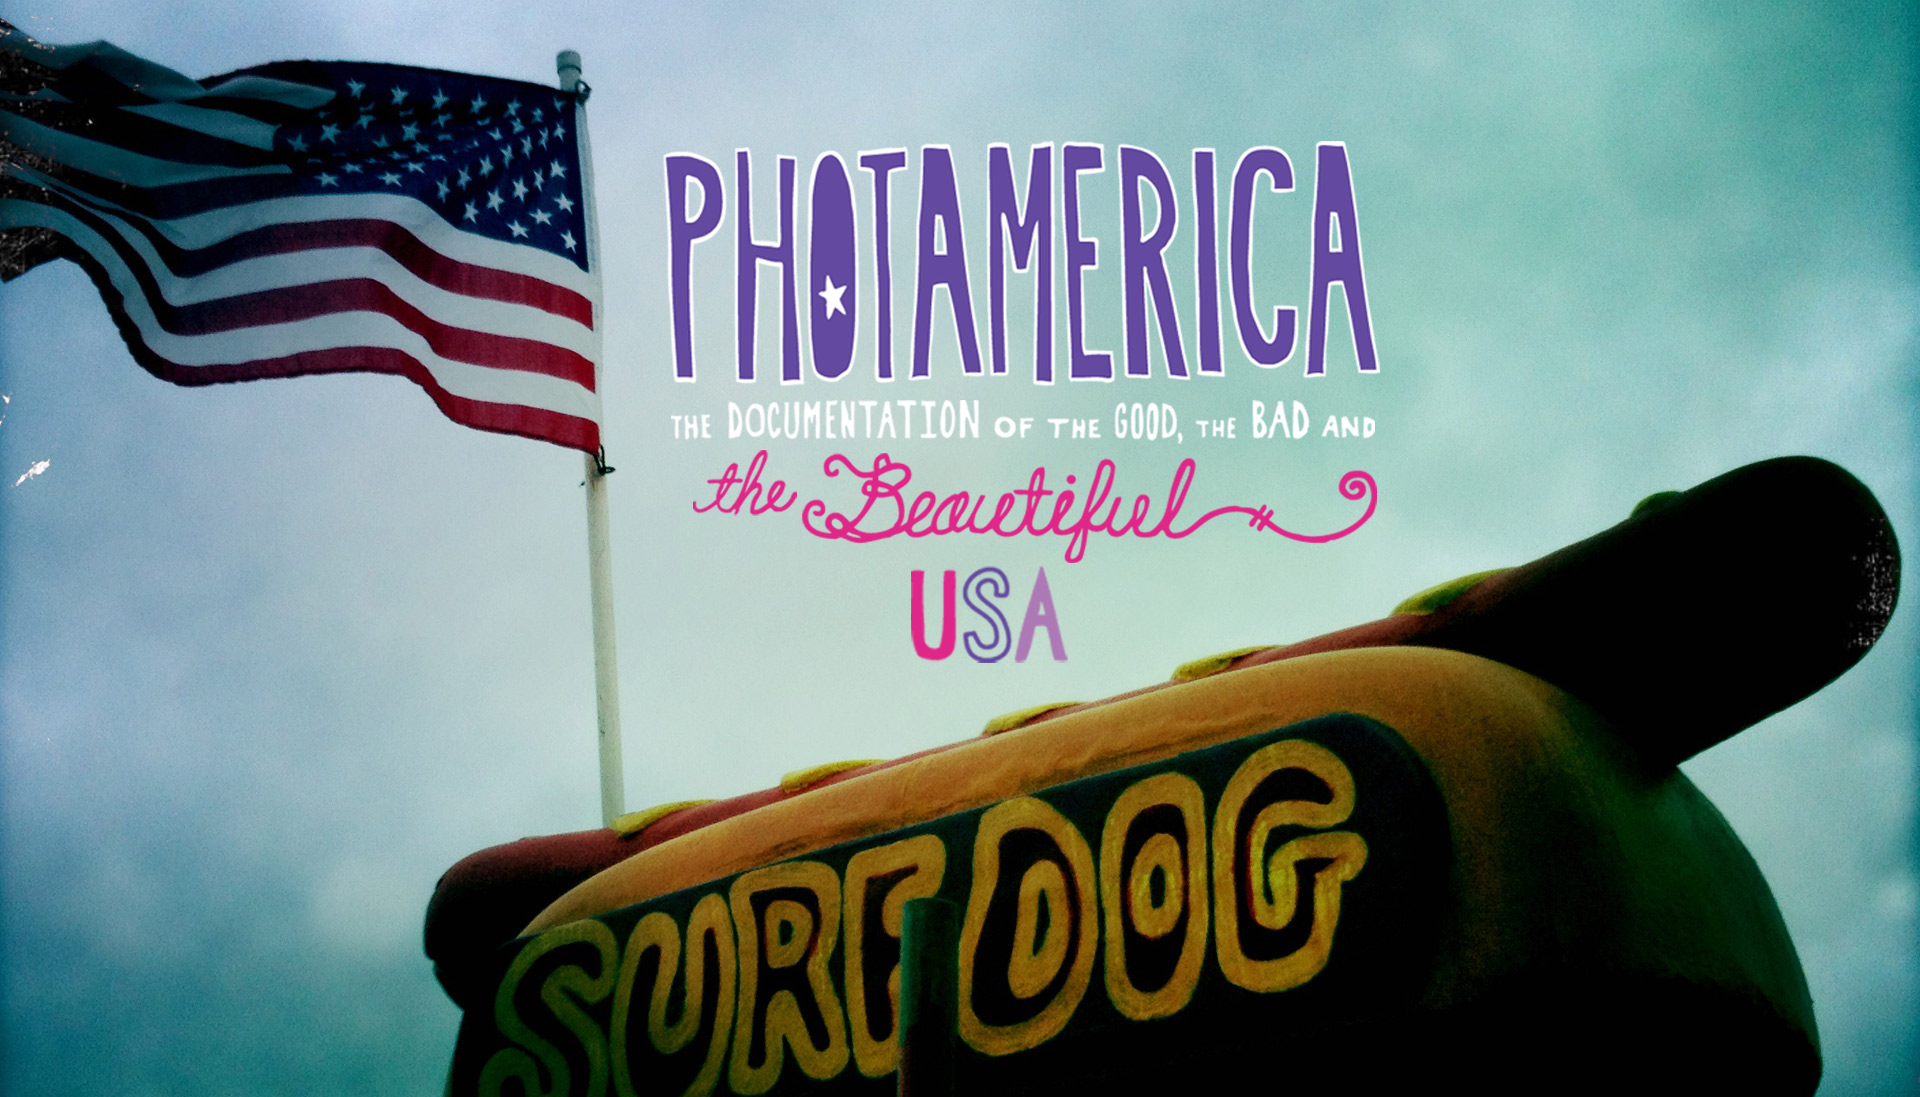 photamerica-home-4